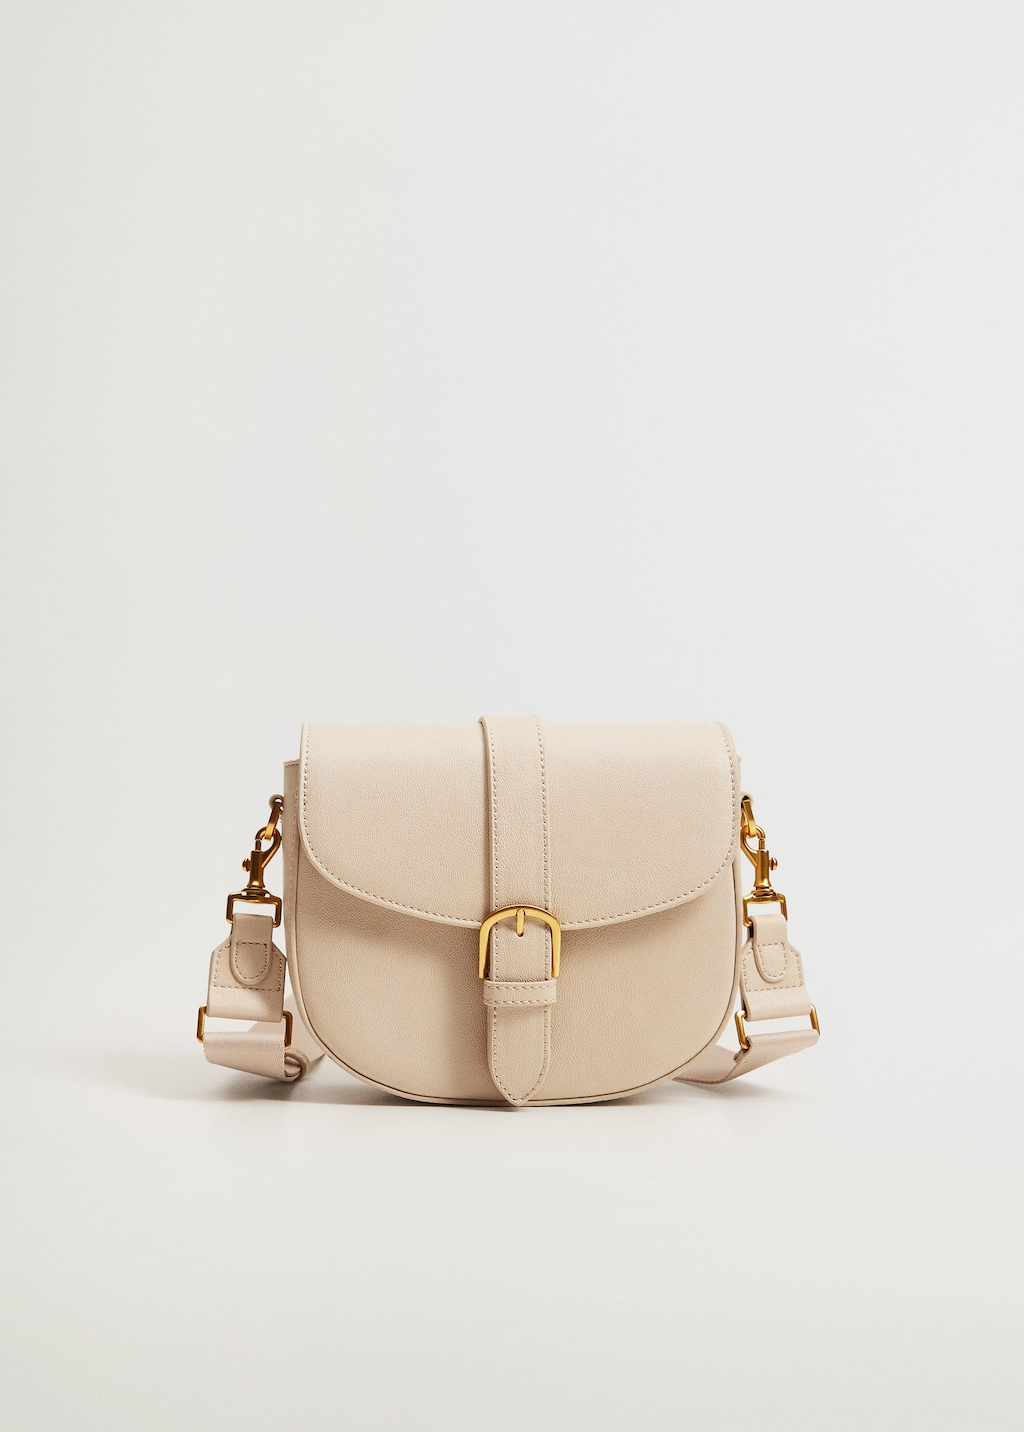 Beige Buckled Flap Bag from Mango